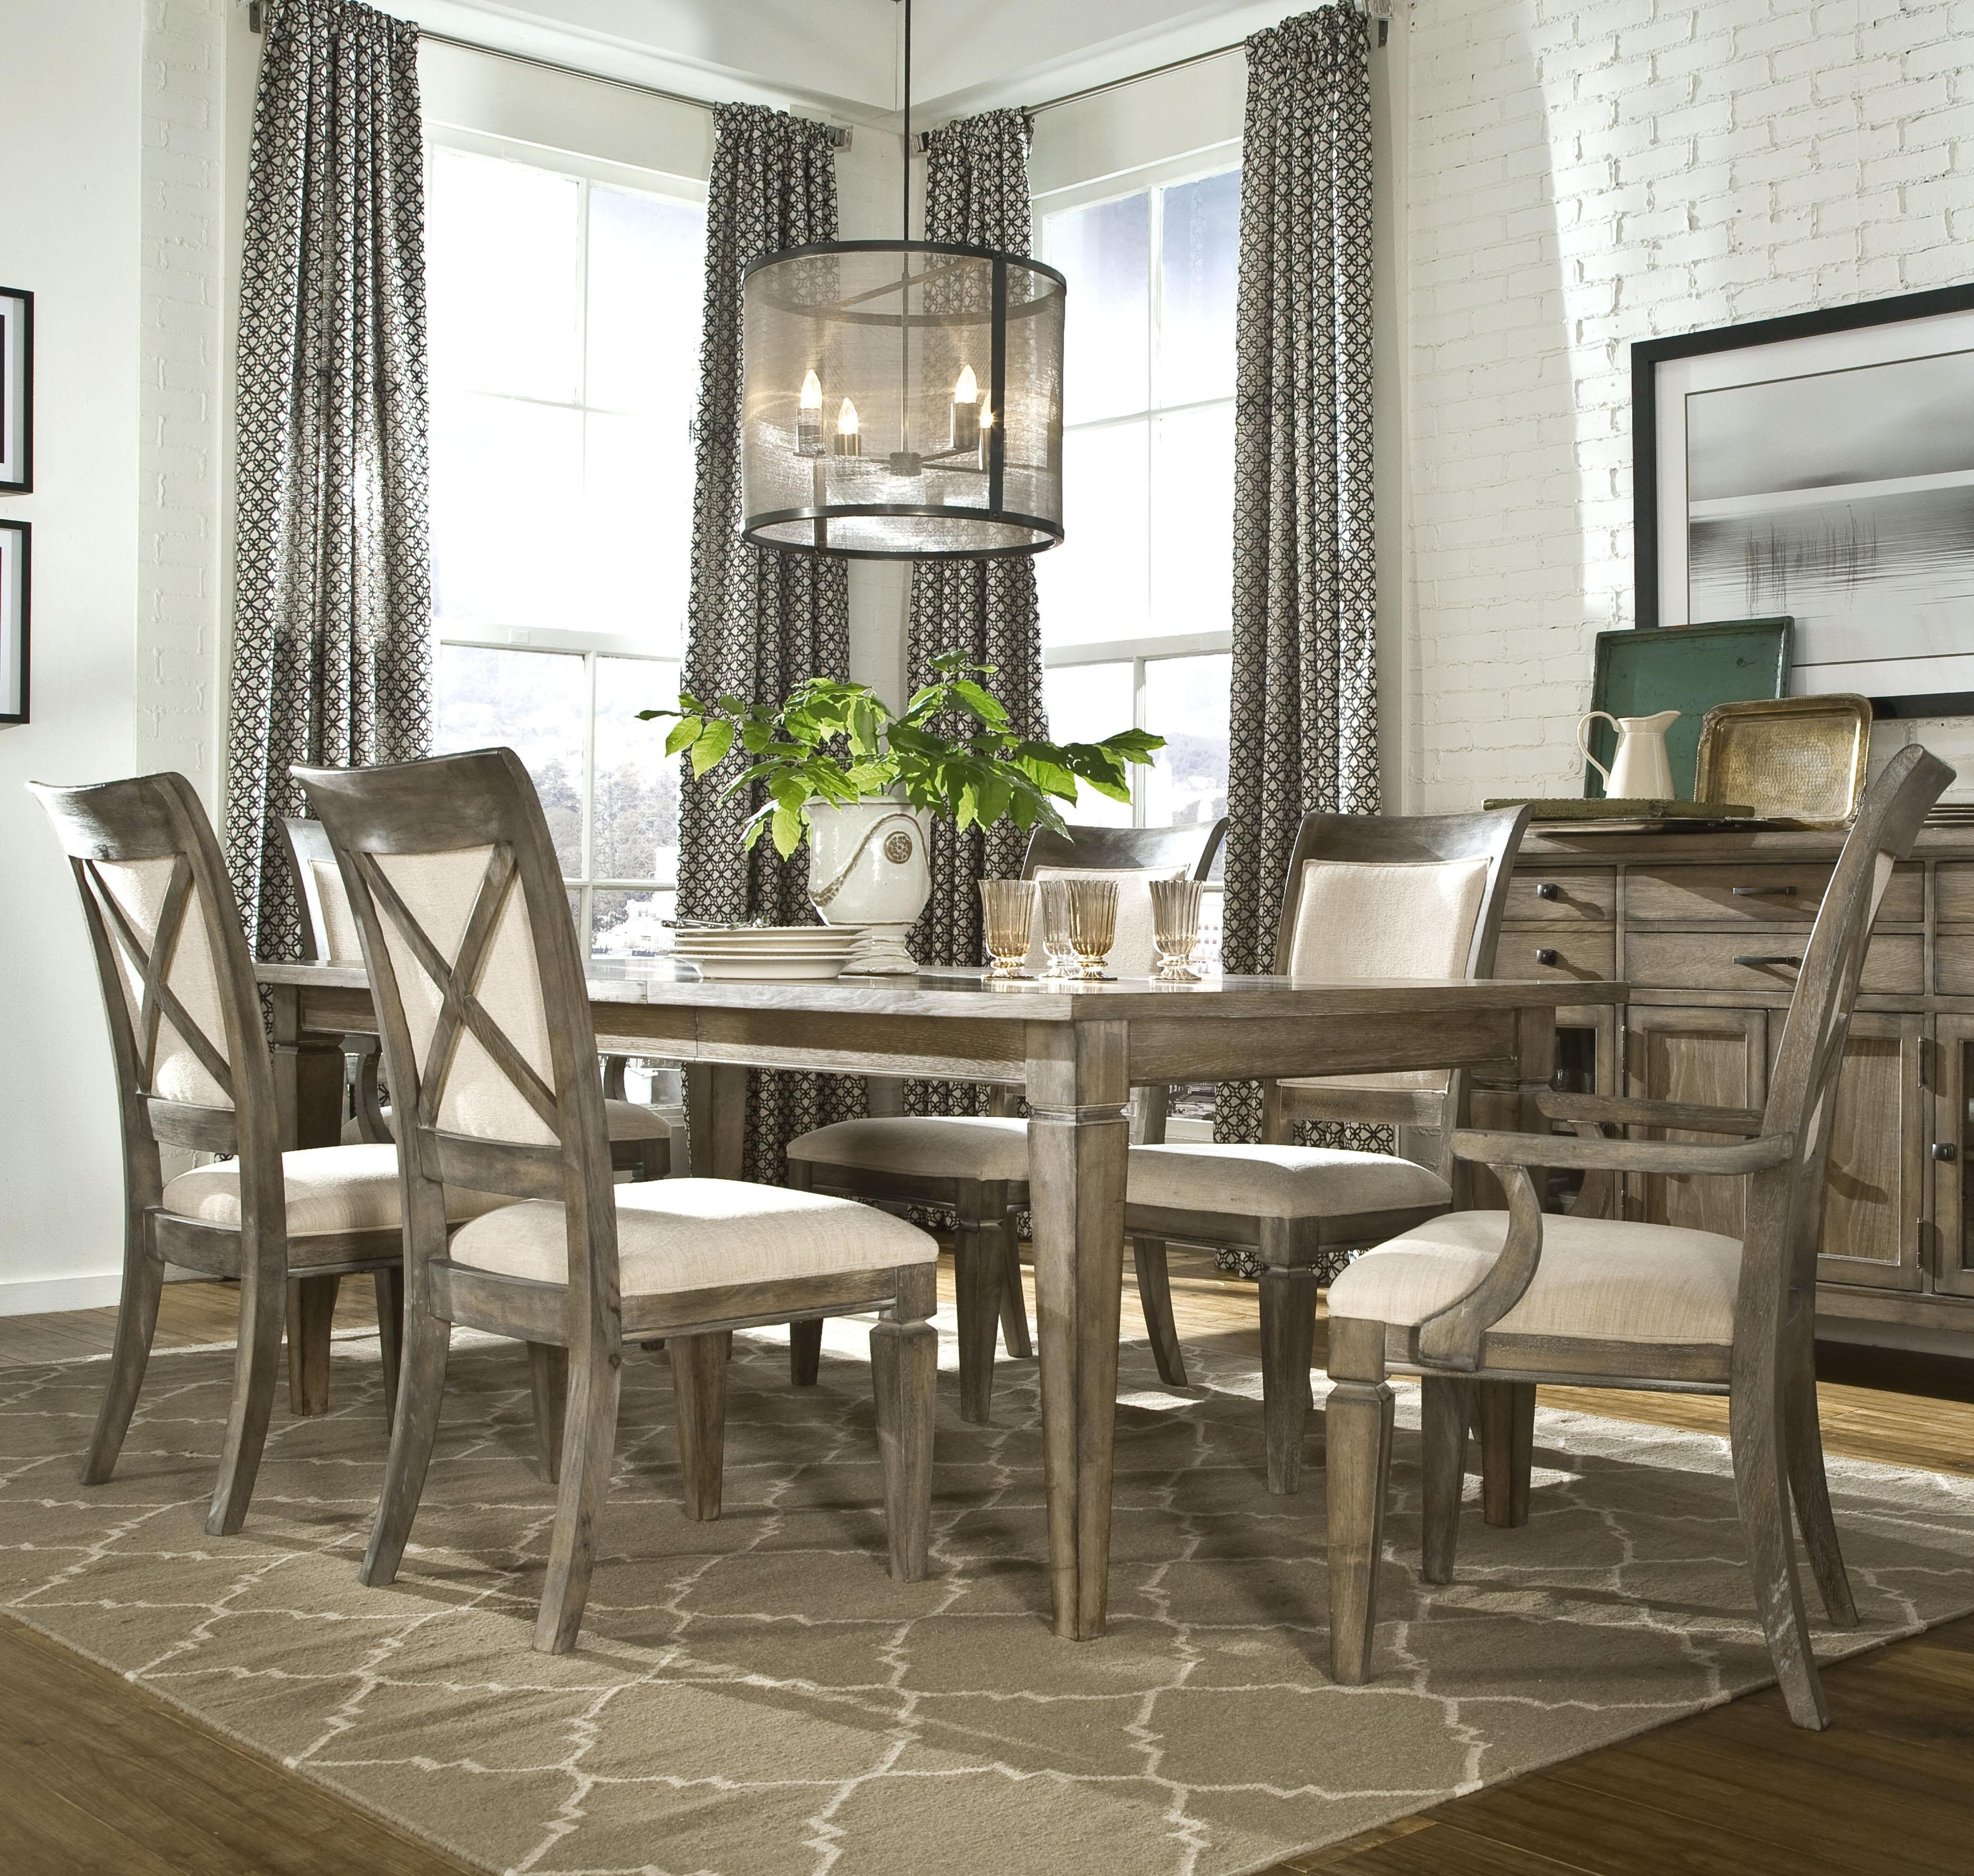 Kitchen Dinette Sets 7 Piece Dining Set Cheap 7 Piece Counter Height For Most Recent Jaxon Grey 5 Piece Round Extension Dining Sets With Upholstered Chairs (View 8 of 20)